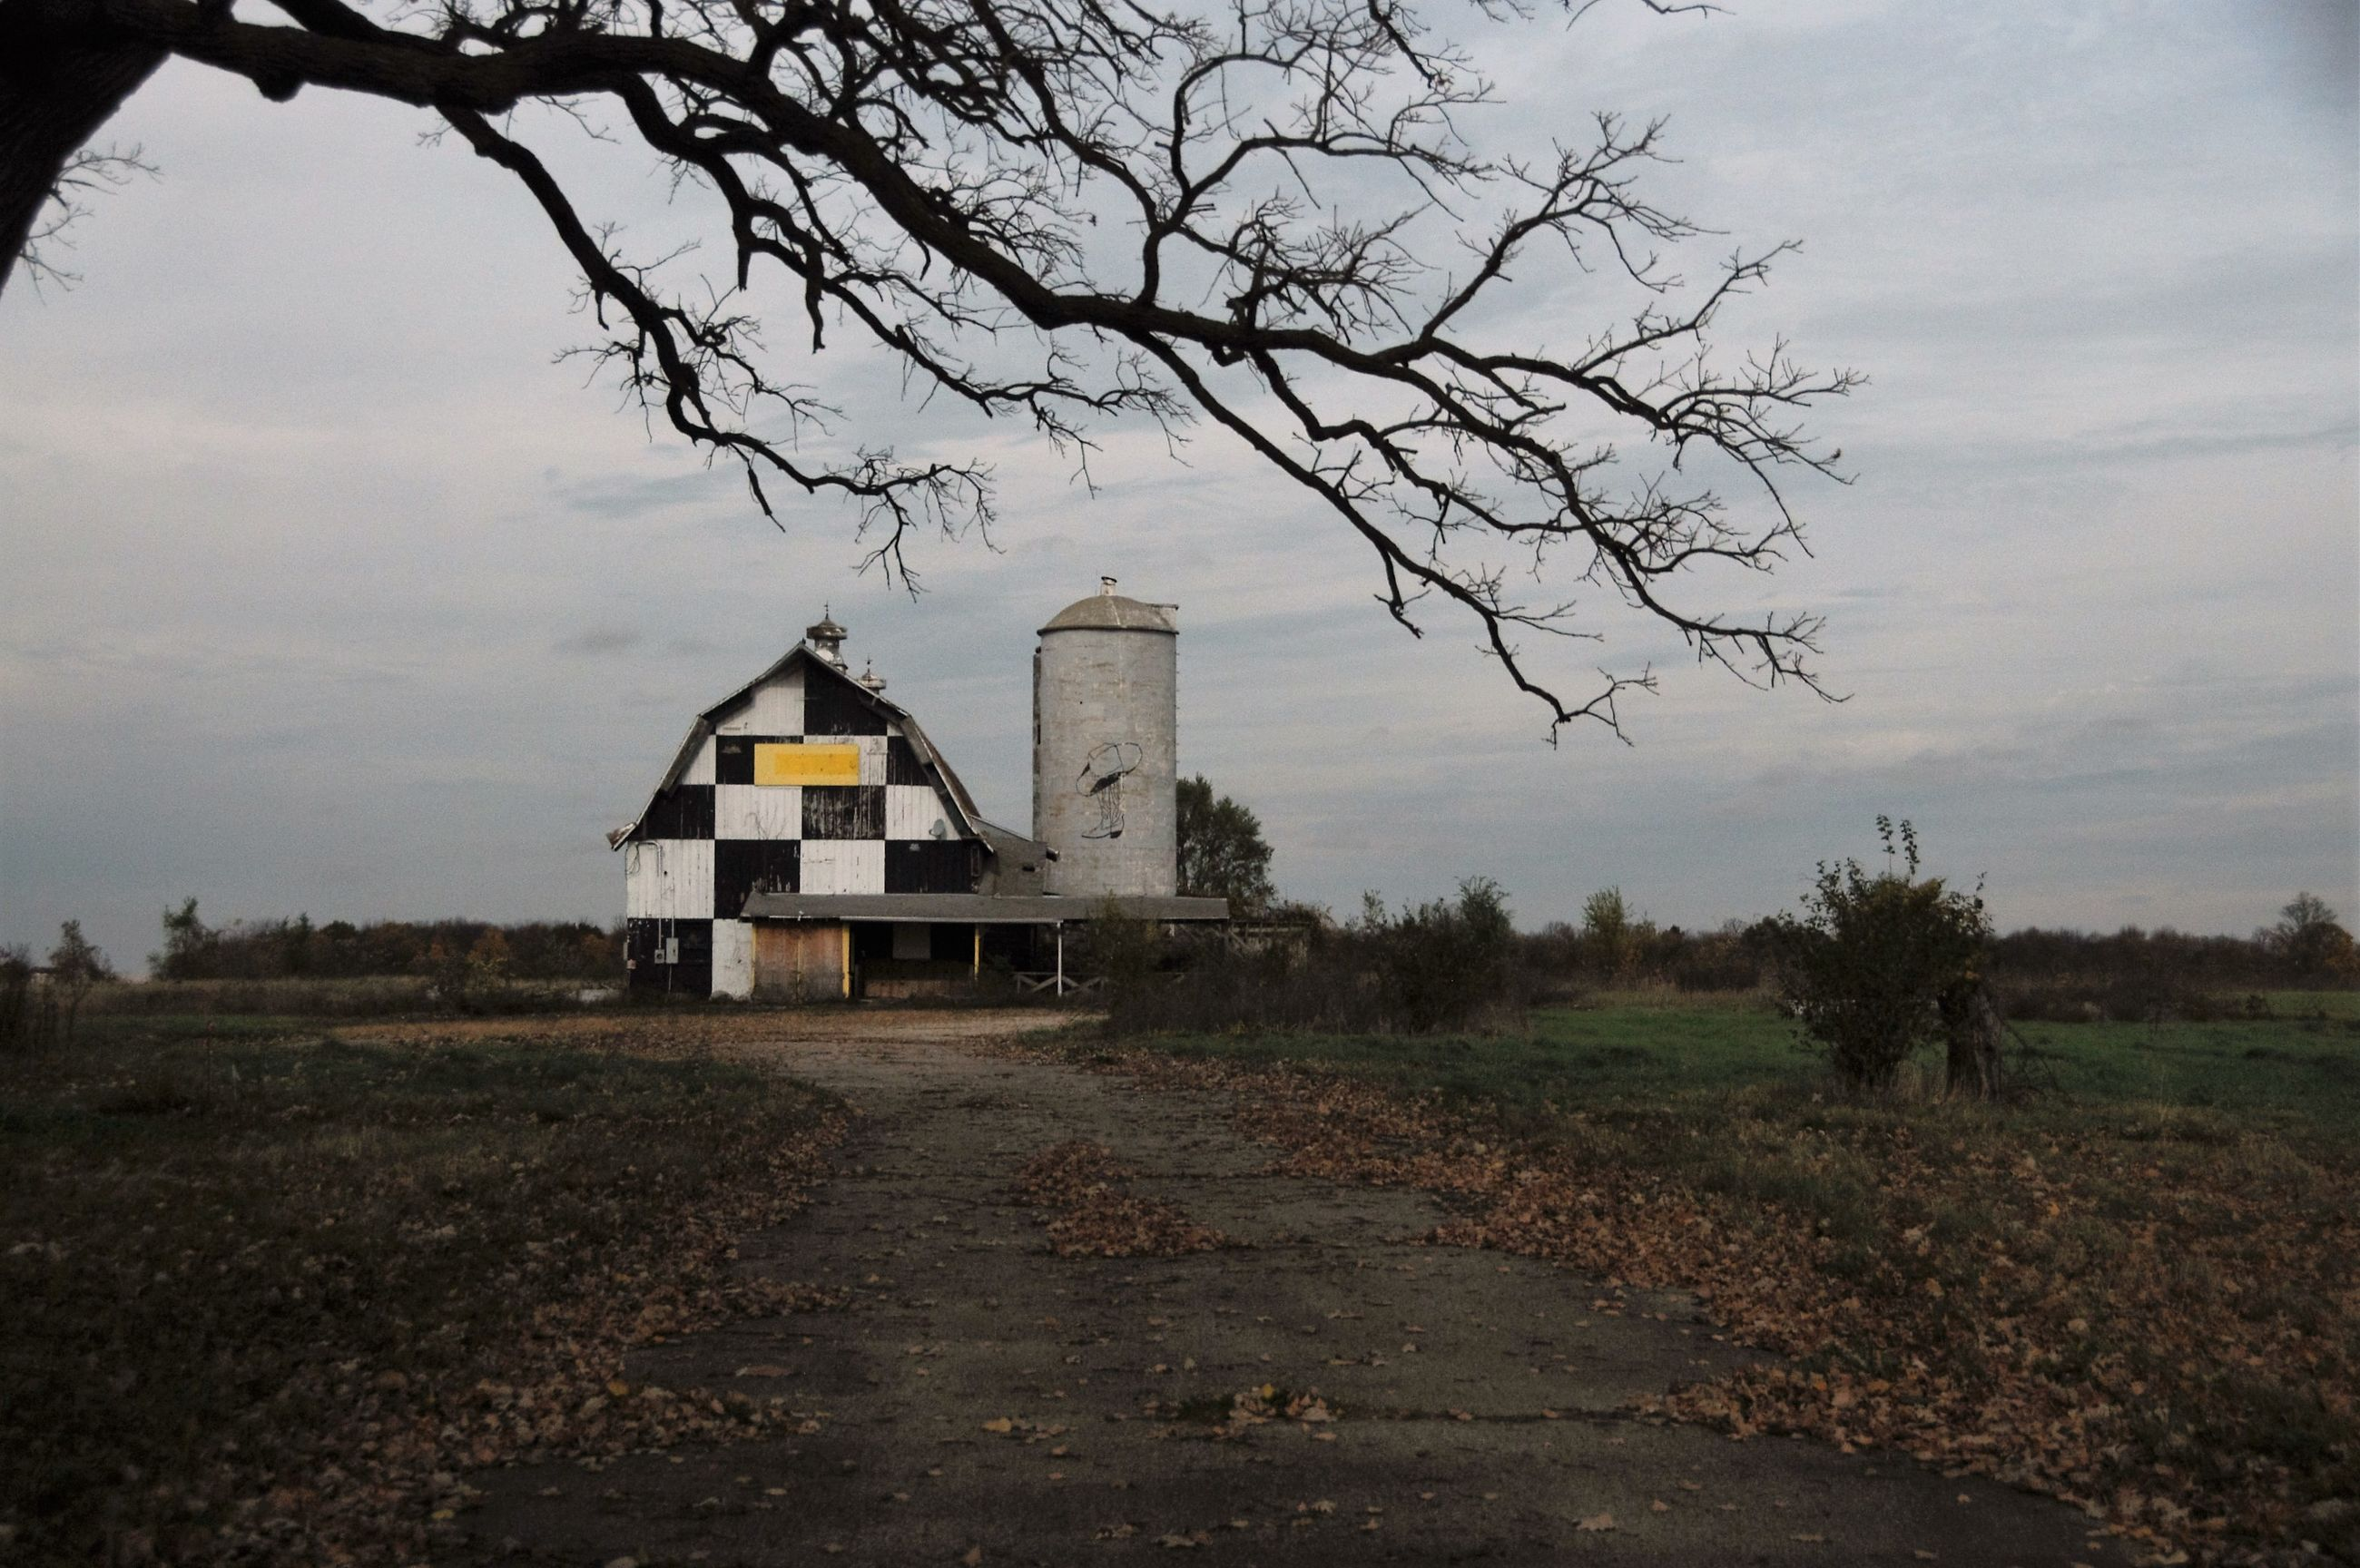 tree, sky, house, building exterior, landscape, built structure, no people, bare tree, cloud - sky, agriculture, nature, scenics, architecture, outdoors, beauty in nature, day